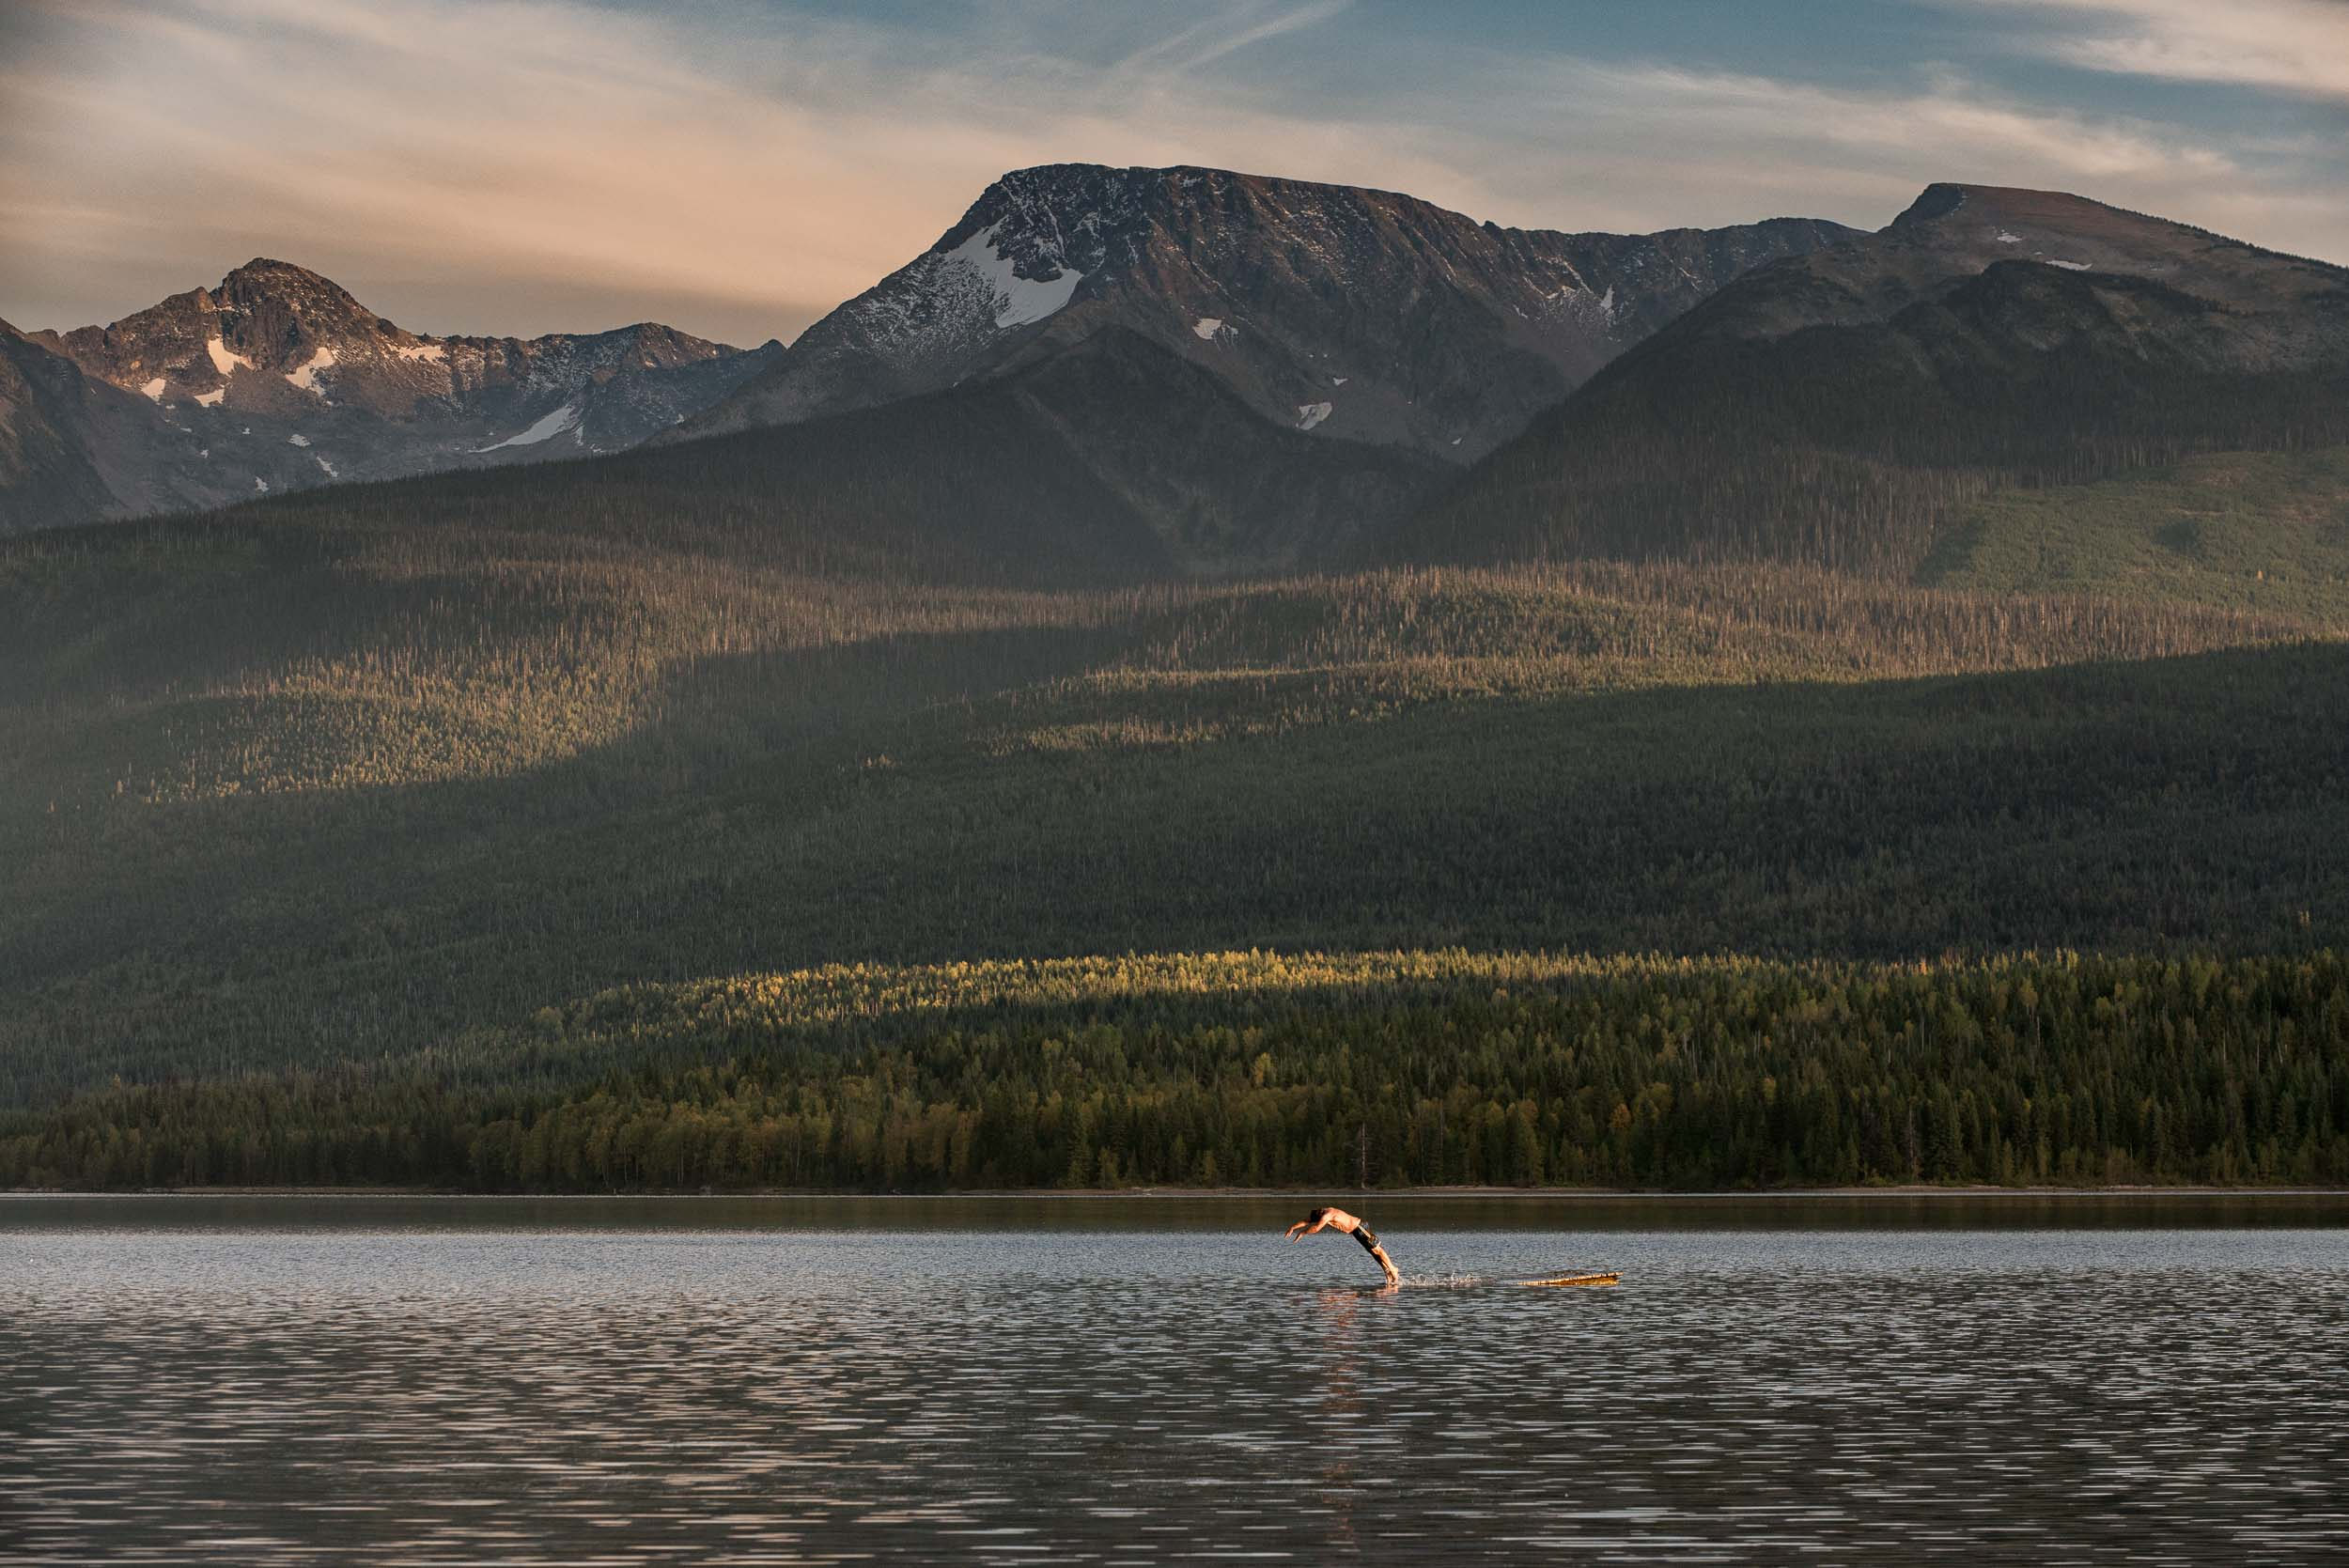 Swimming in Crooked Lake in the Cariboo Mountain range. Credit: Destination BC/Michael Bednar